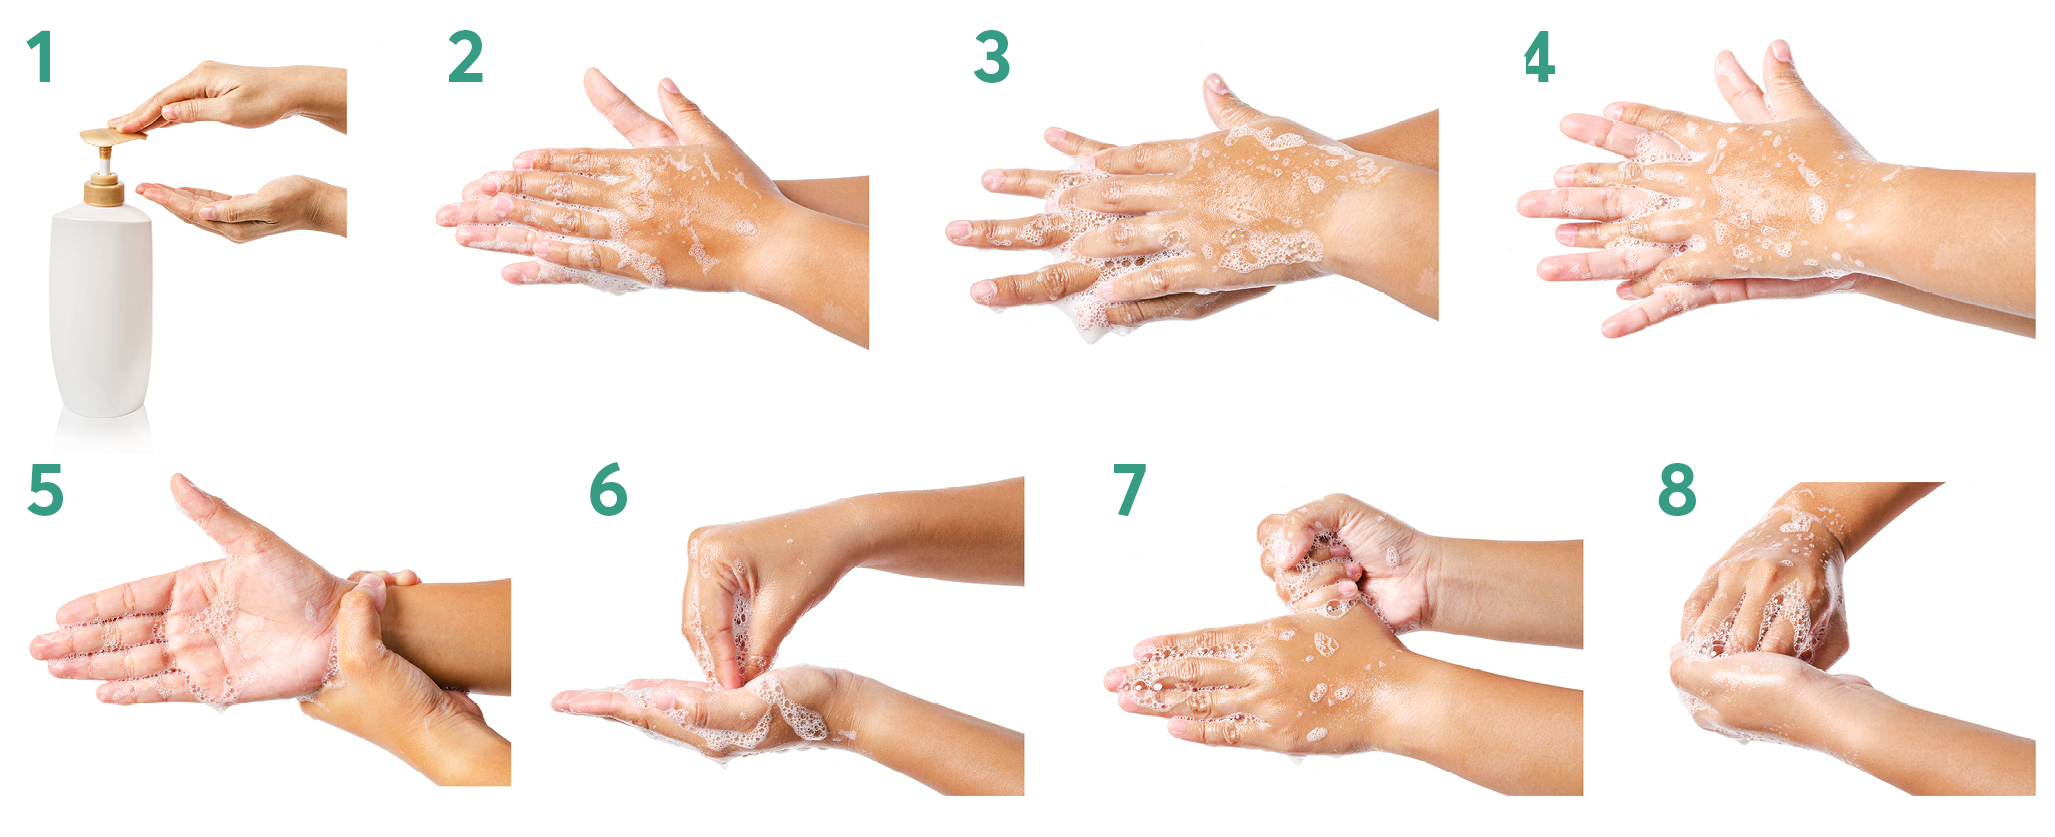 Washing hands diagrams